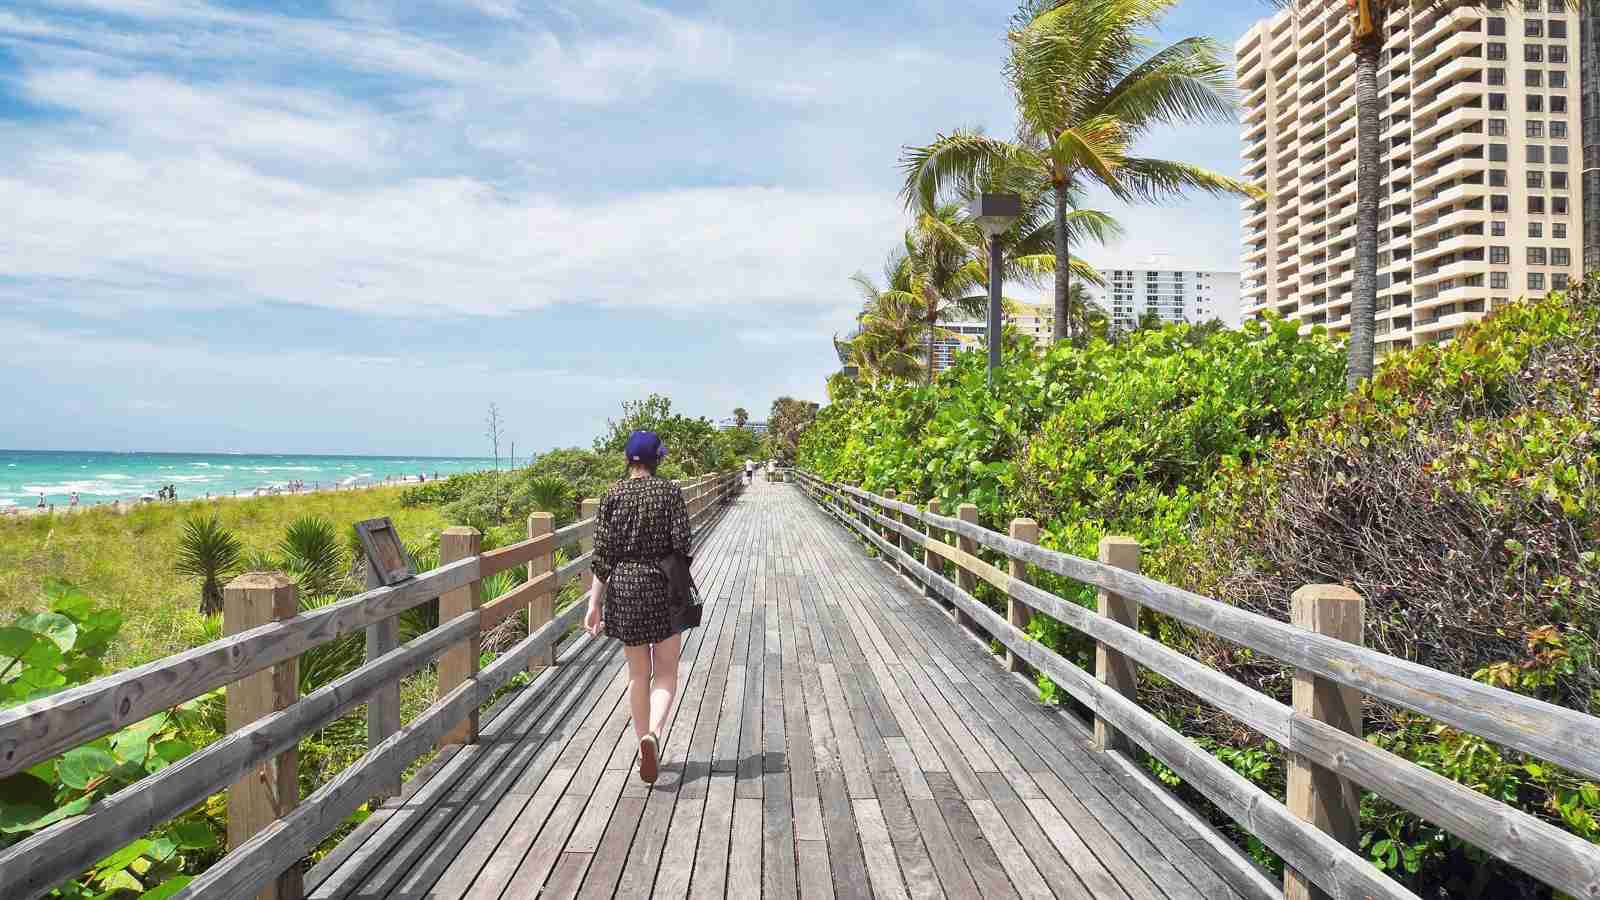 The South Beach boardwalk. (Photo by Julien Borean via Unsplash)